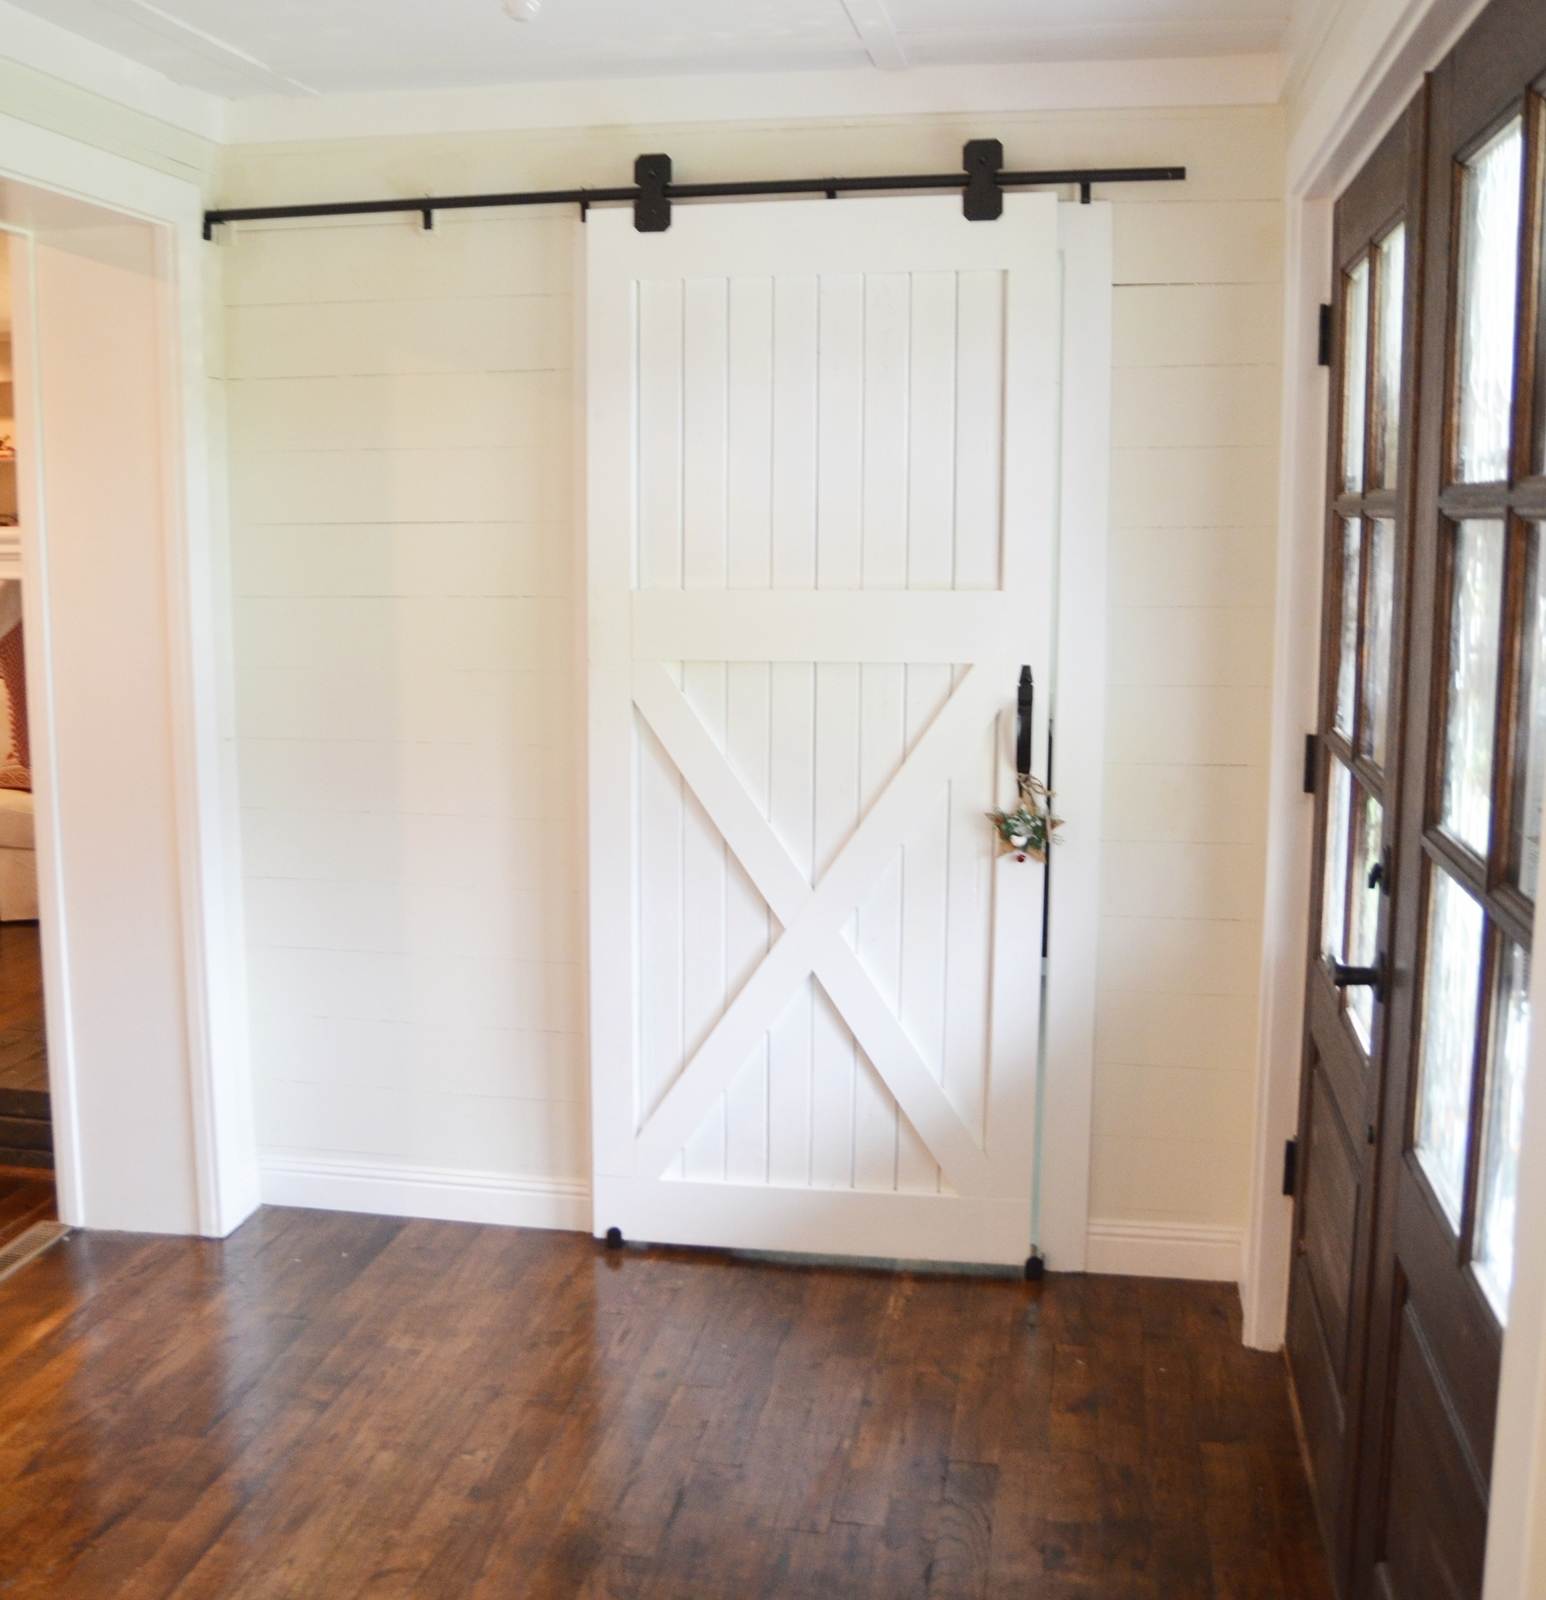 Diy barn door designs and tutorials from thrifty decor chick - Barn door patterns ...